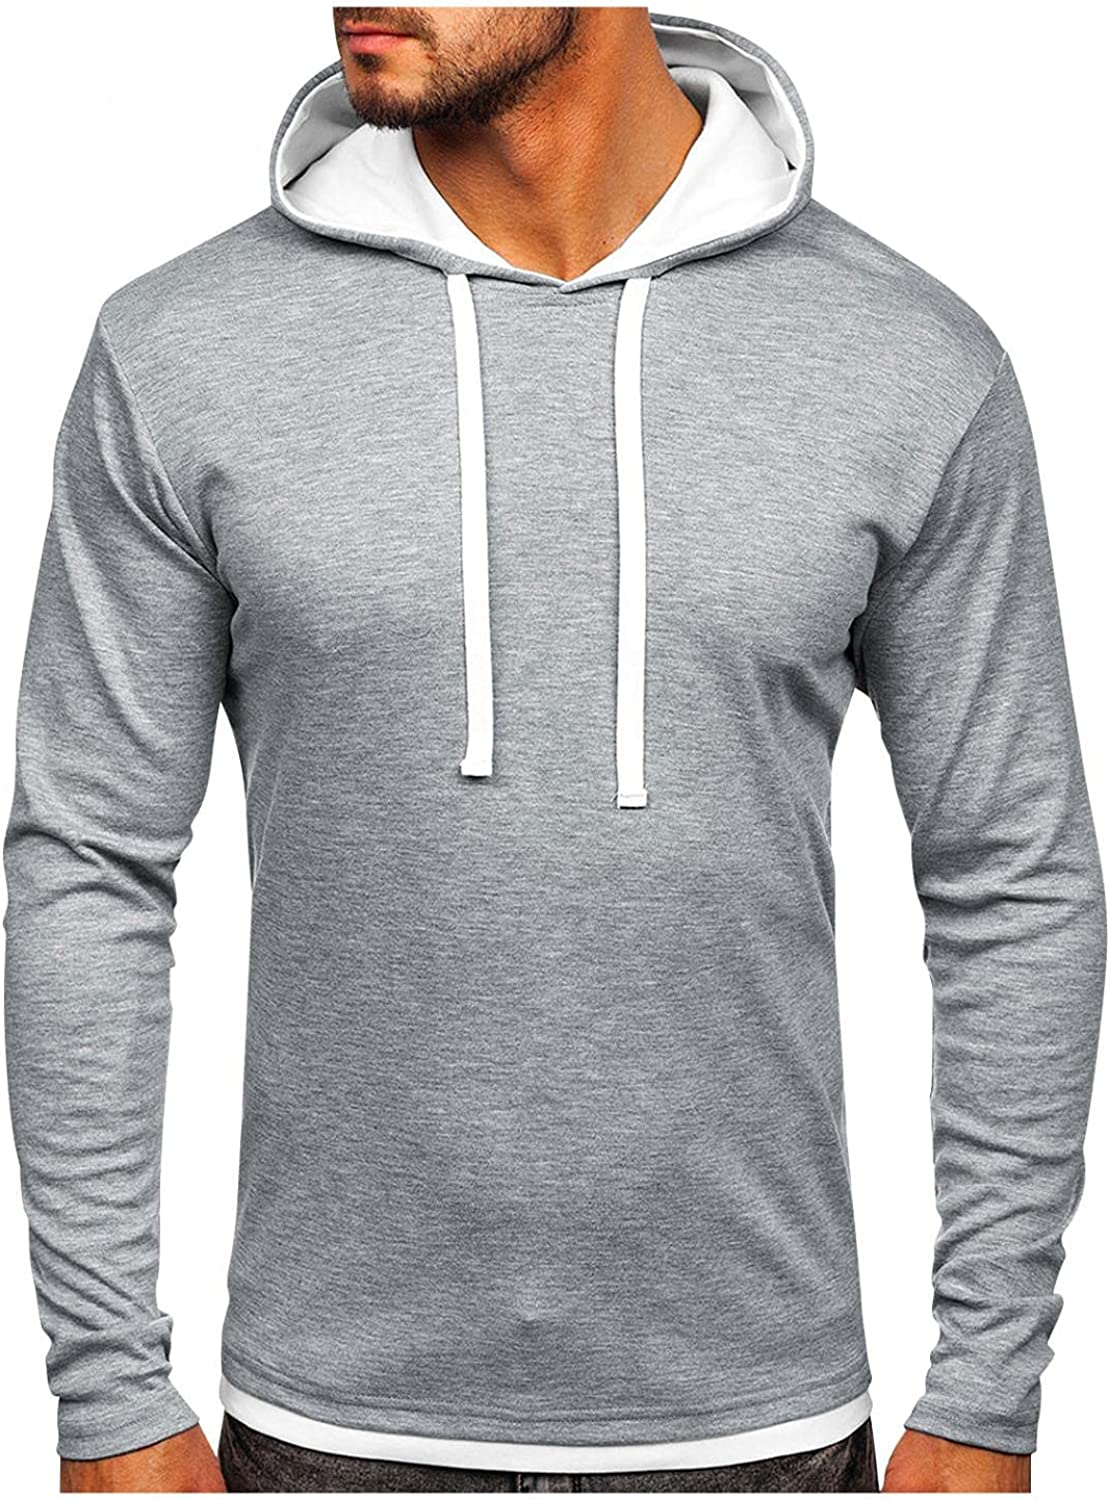 Men's Standard Pullover Sweatshirts Hoodies Long Sleeve Athletic Fashion Solid Color Lightweight T Shirt Hooded Tops